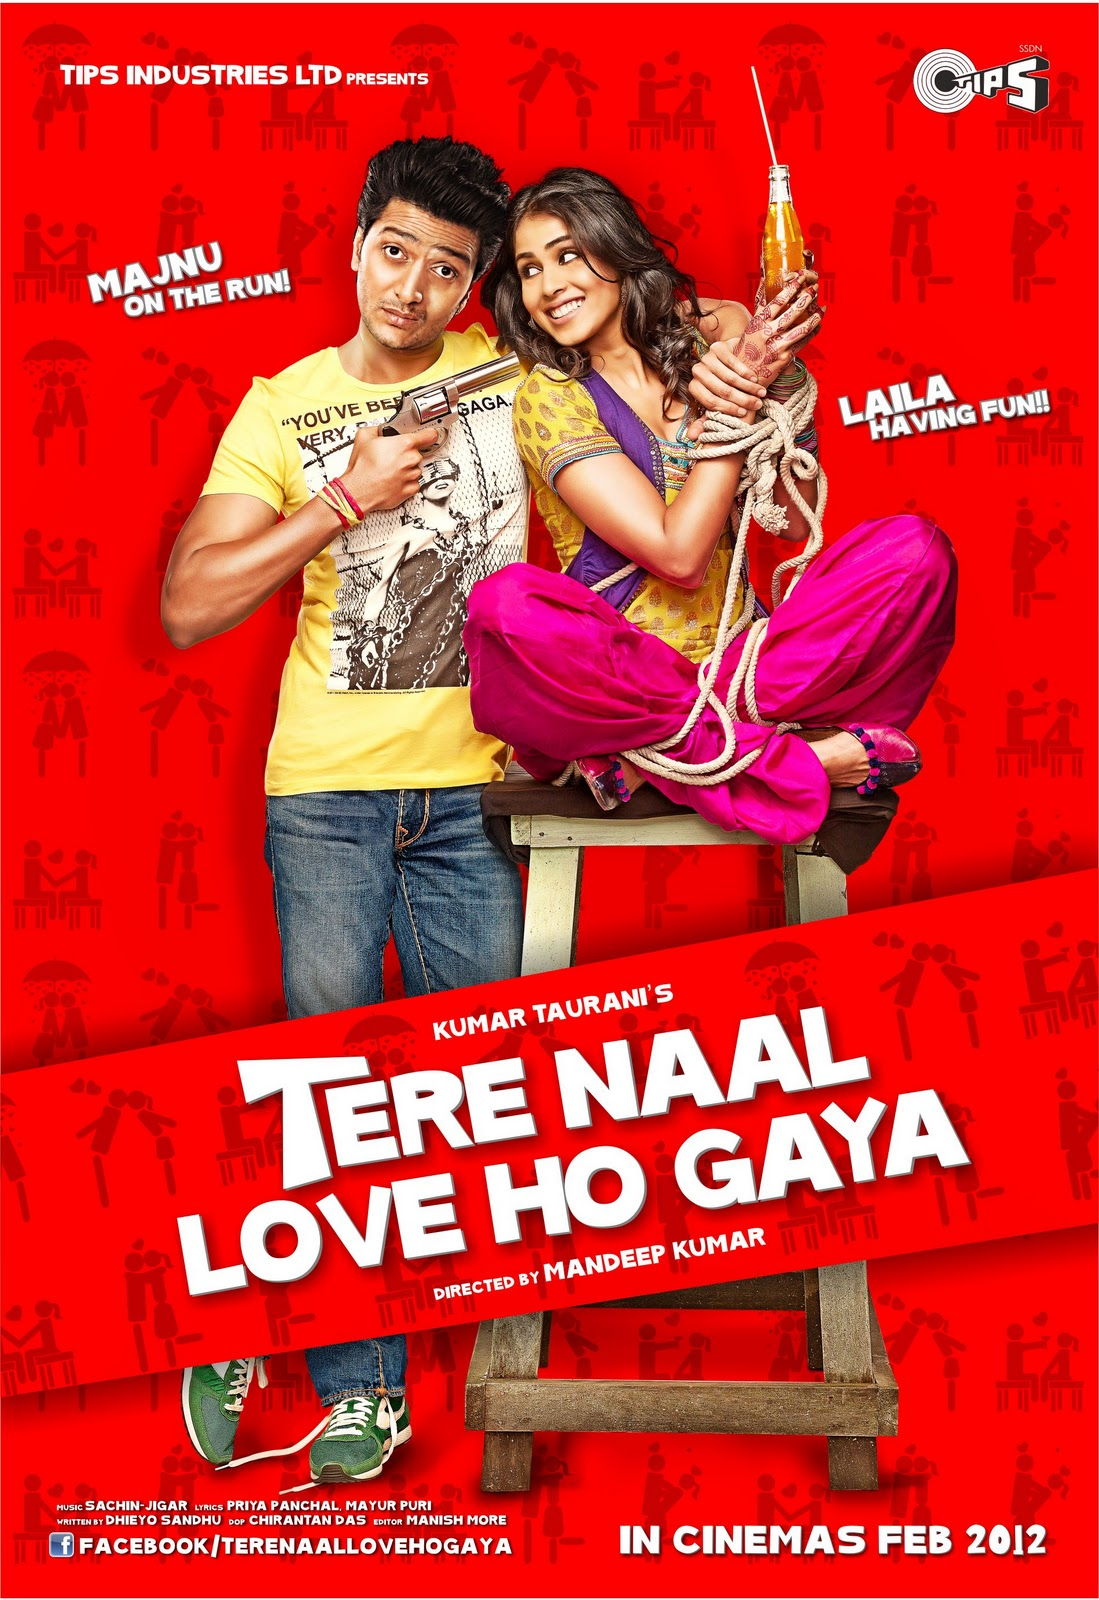 http://3.bp.blogspot.com/-ml7M14rpX4o/TxjhsuNKcXI/AAAAAAAACDs/geWUyG5mZ5w/s1600/Tere-Naal-Love-Ho-Gaya-Movie-Wallpapers-1.jpg